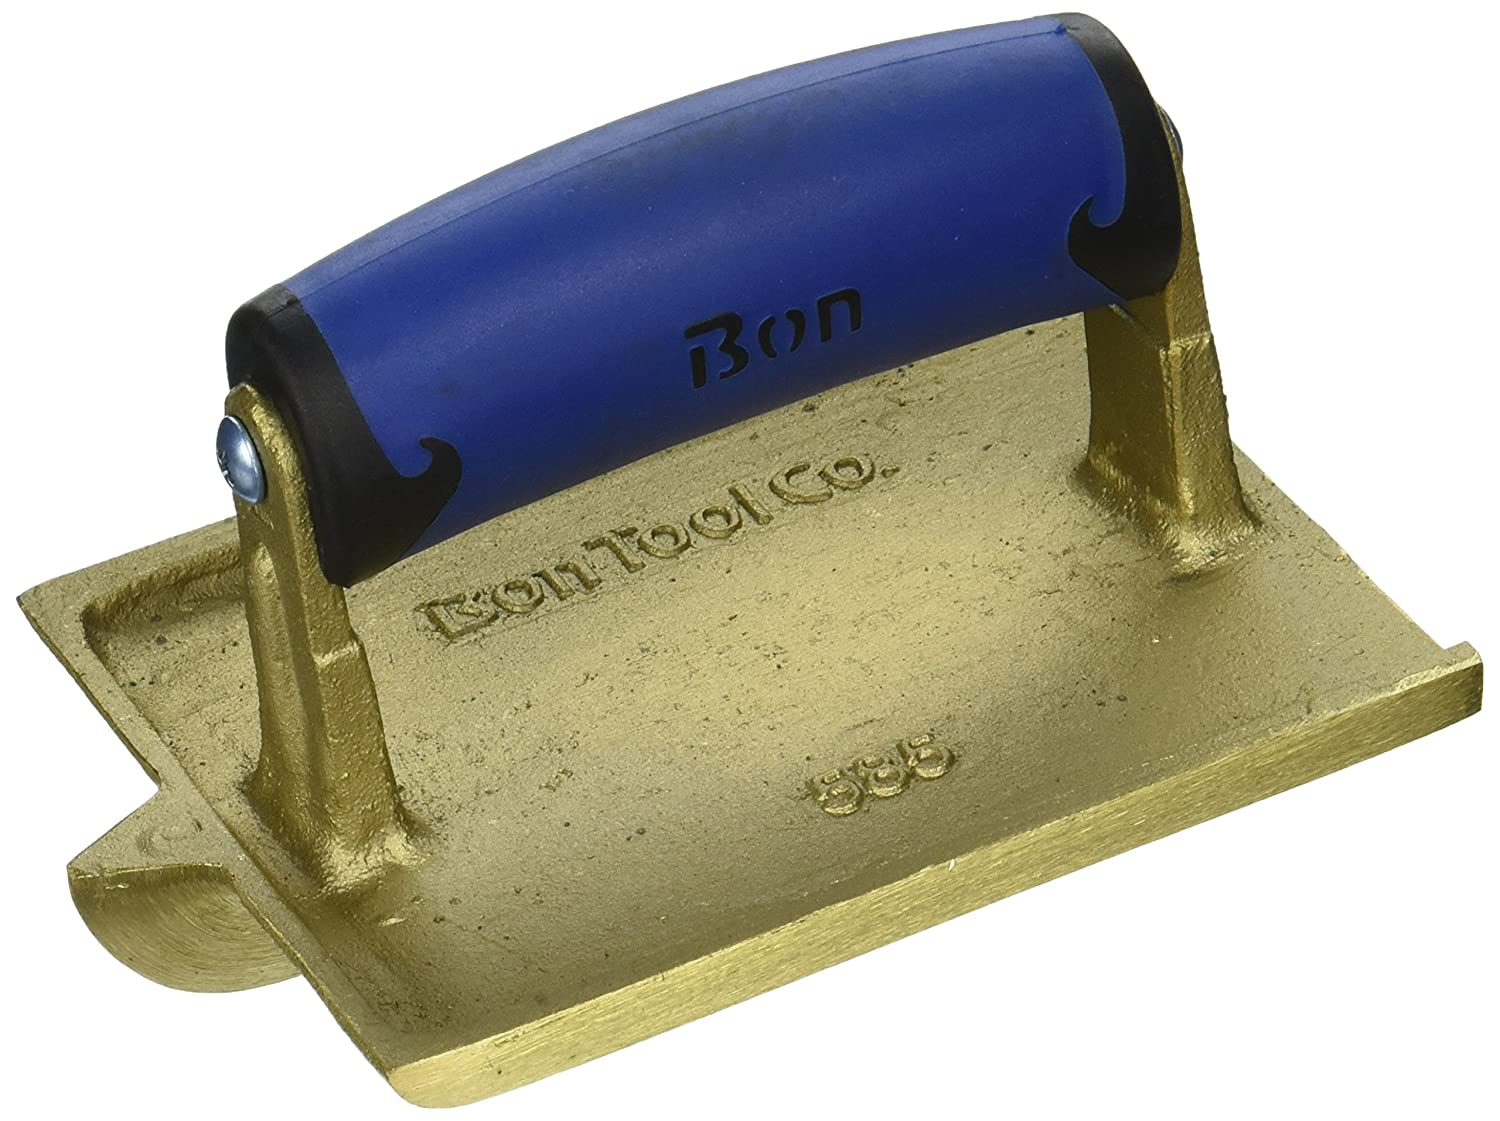 Bon 62-585 6-Inch by 4-1//2-Inch Bronze Hand Concrete Groover 5//8-Inch Bit Depth by 5//8-Inch Bit Depth